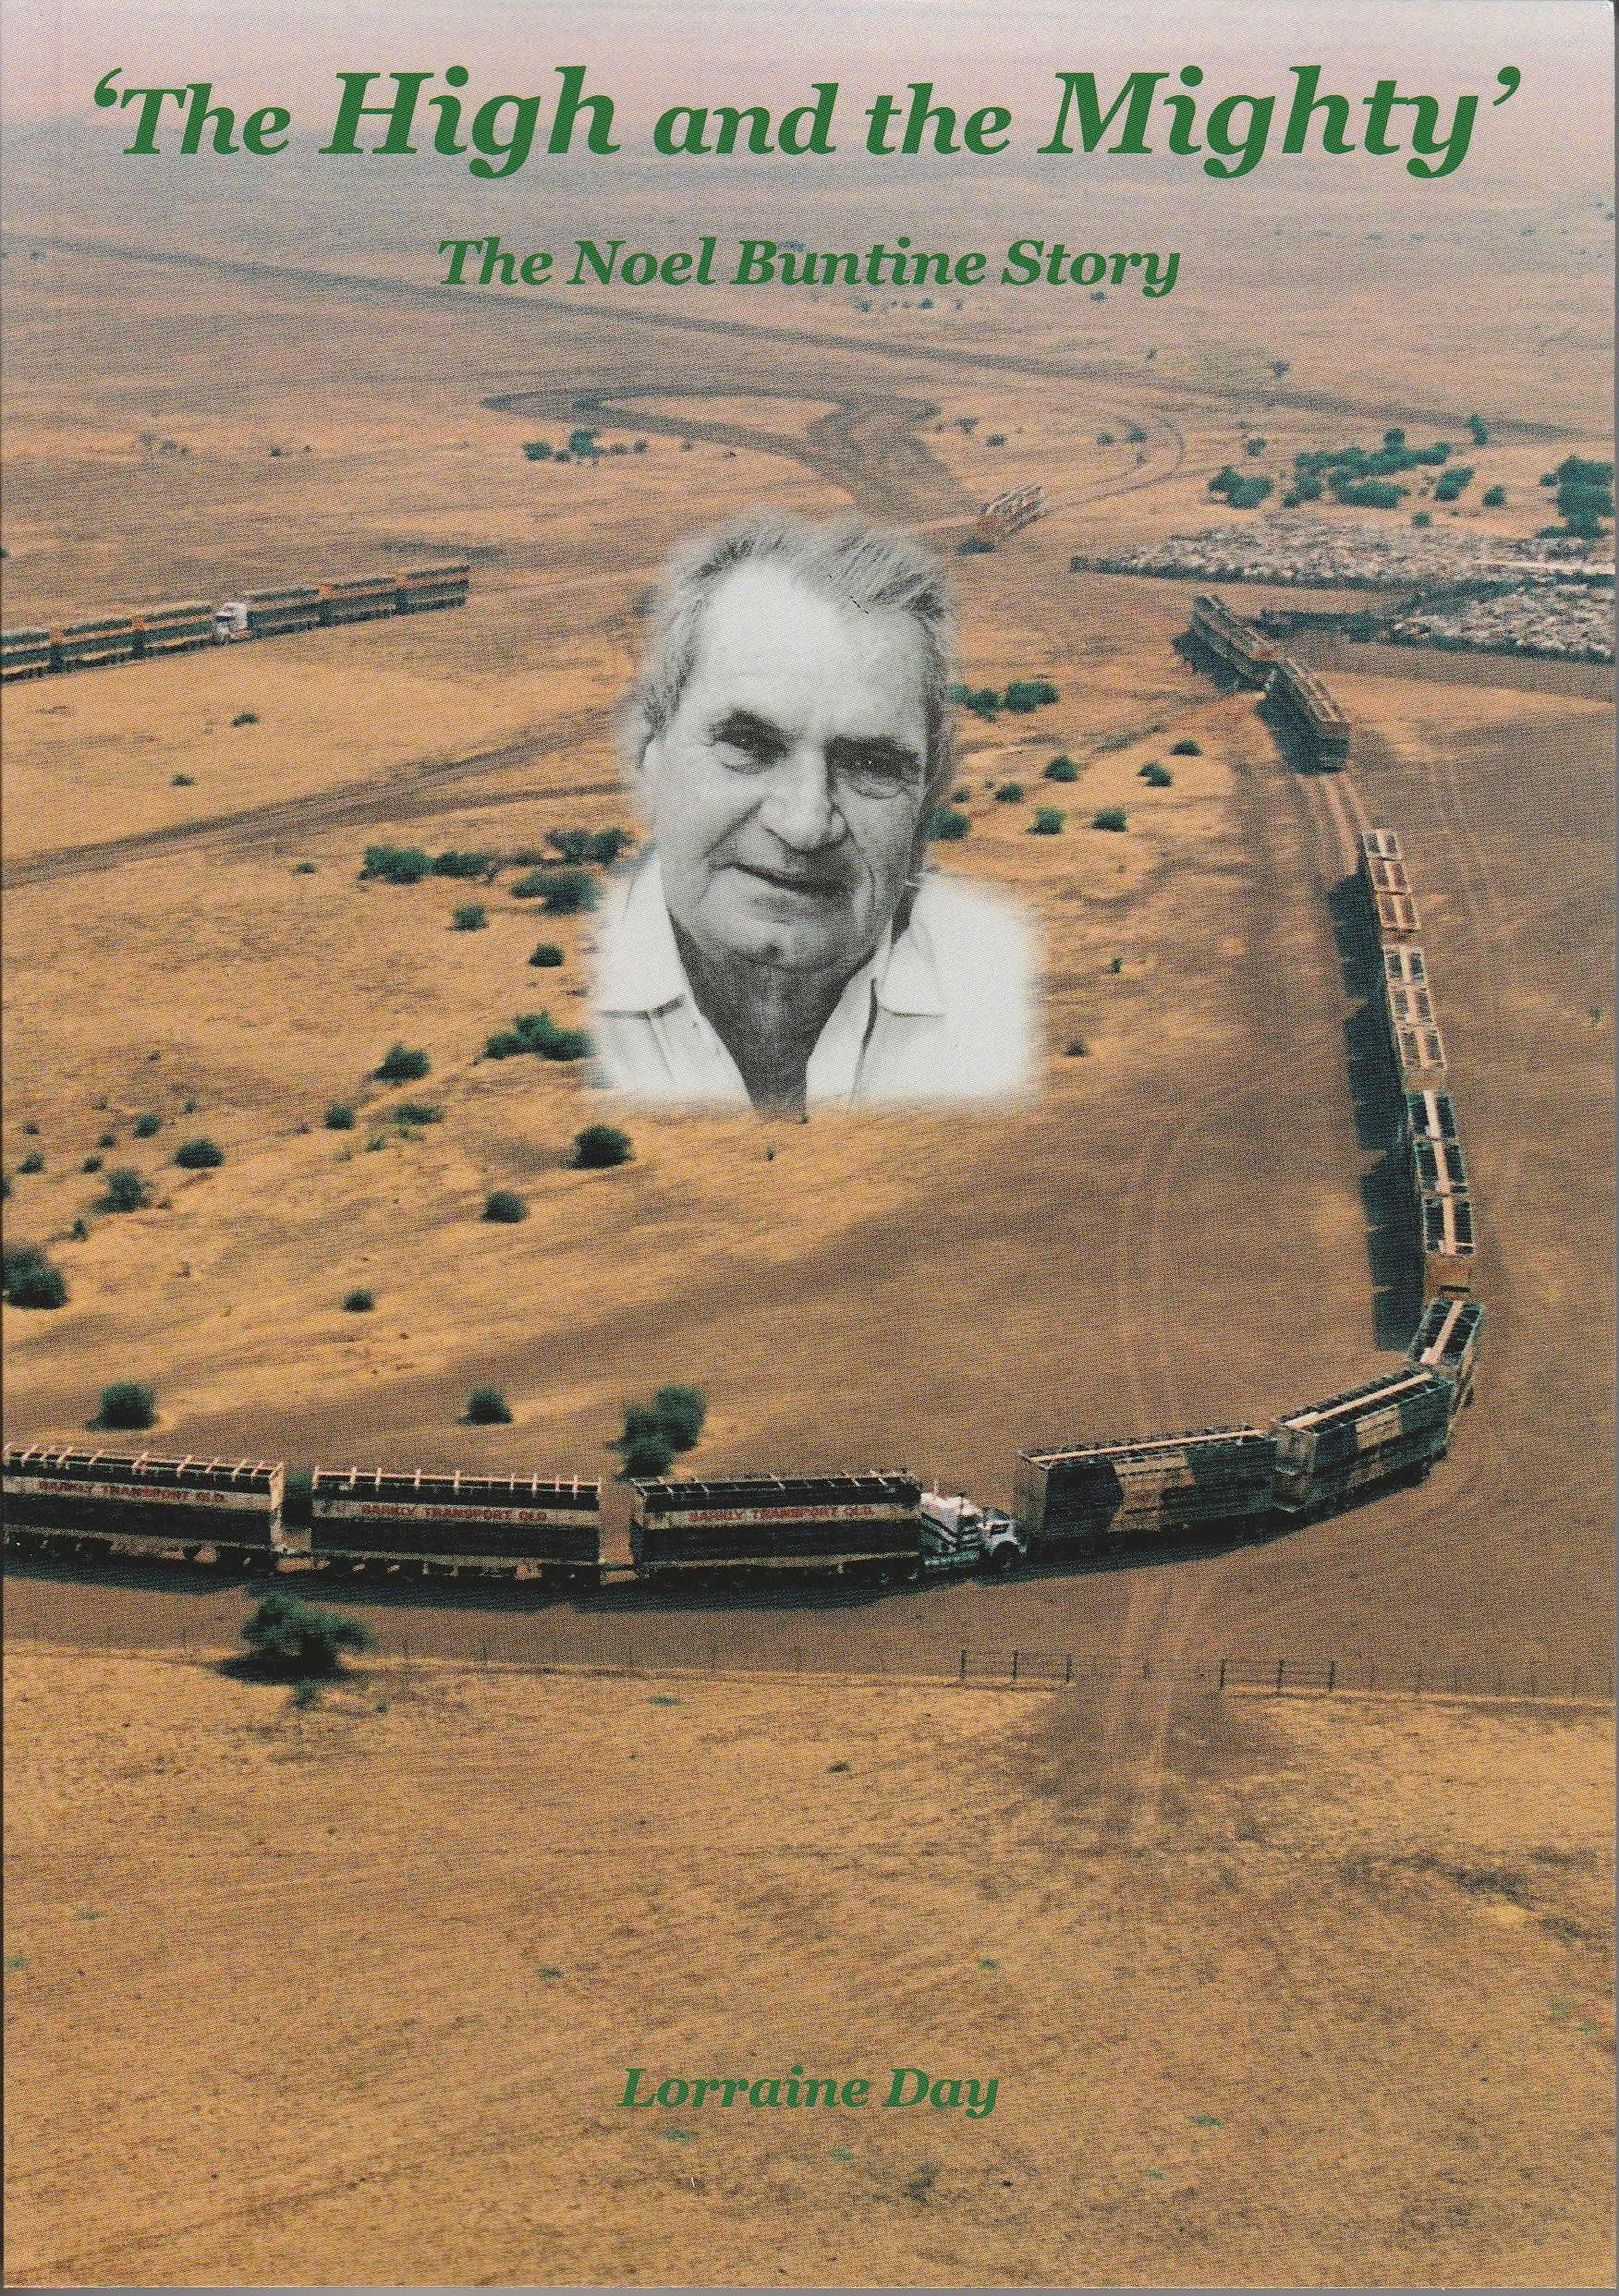 OUT NOW! The High and the Mighty – the story of legendary road train pioneer Noel Buntine